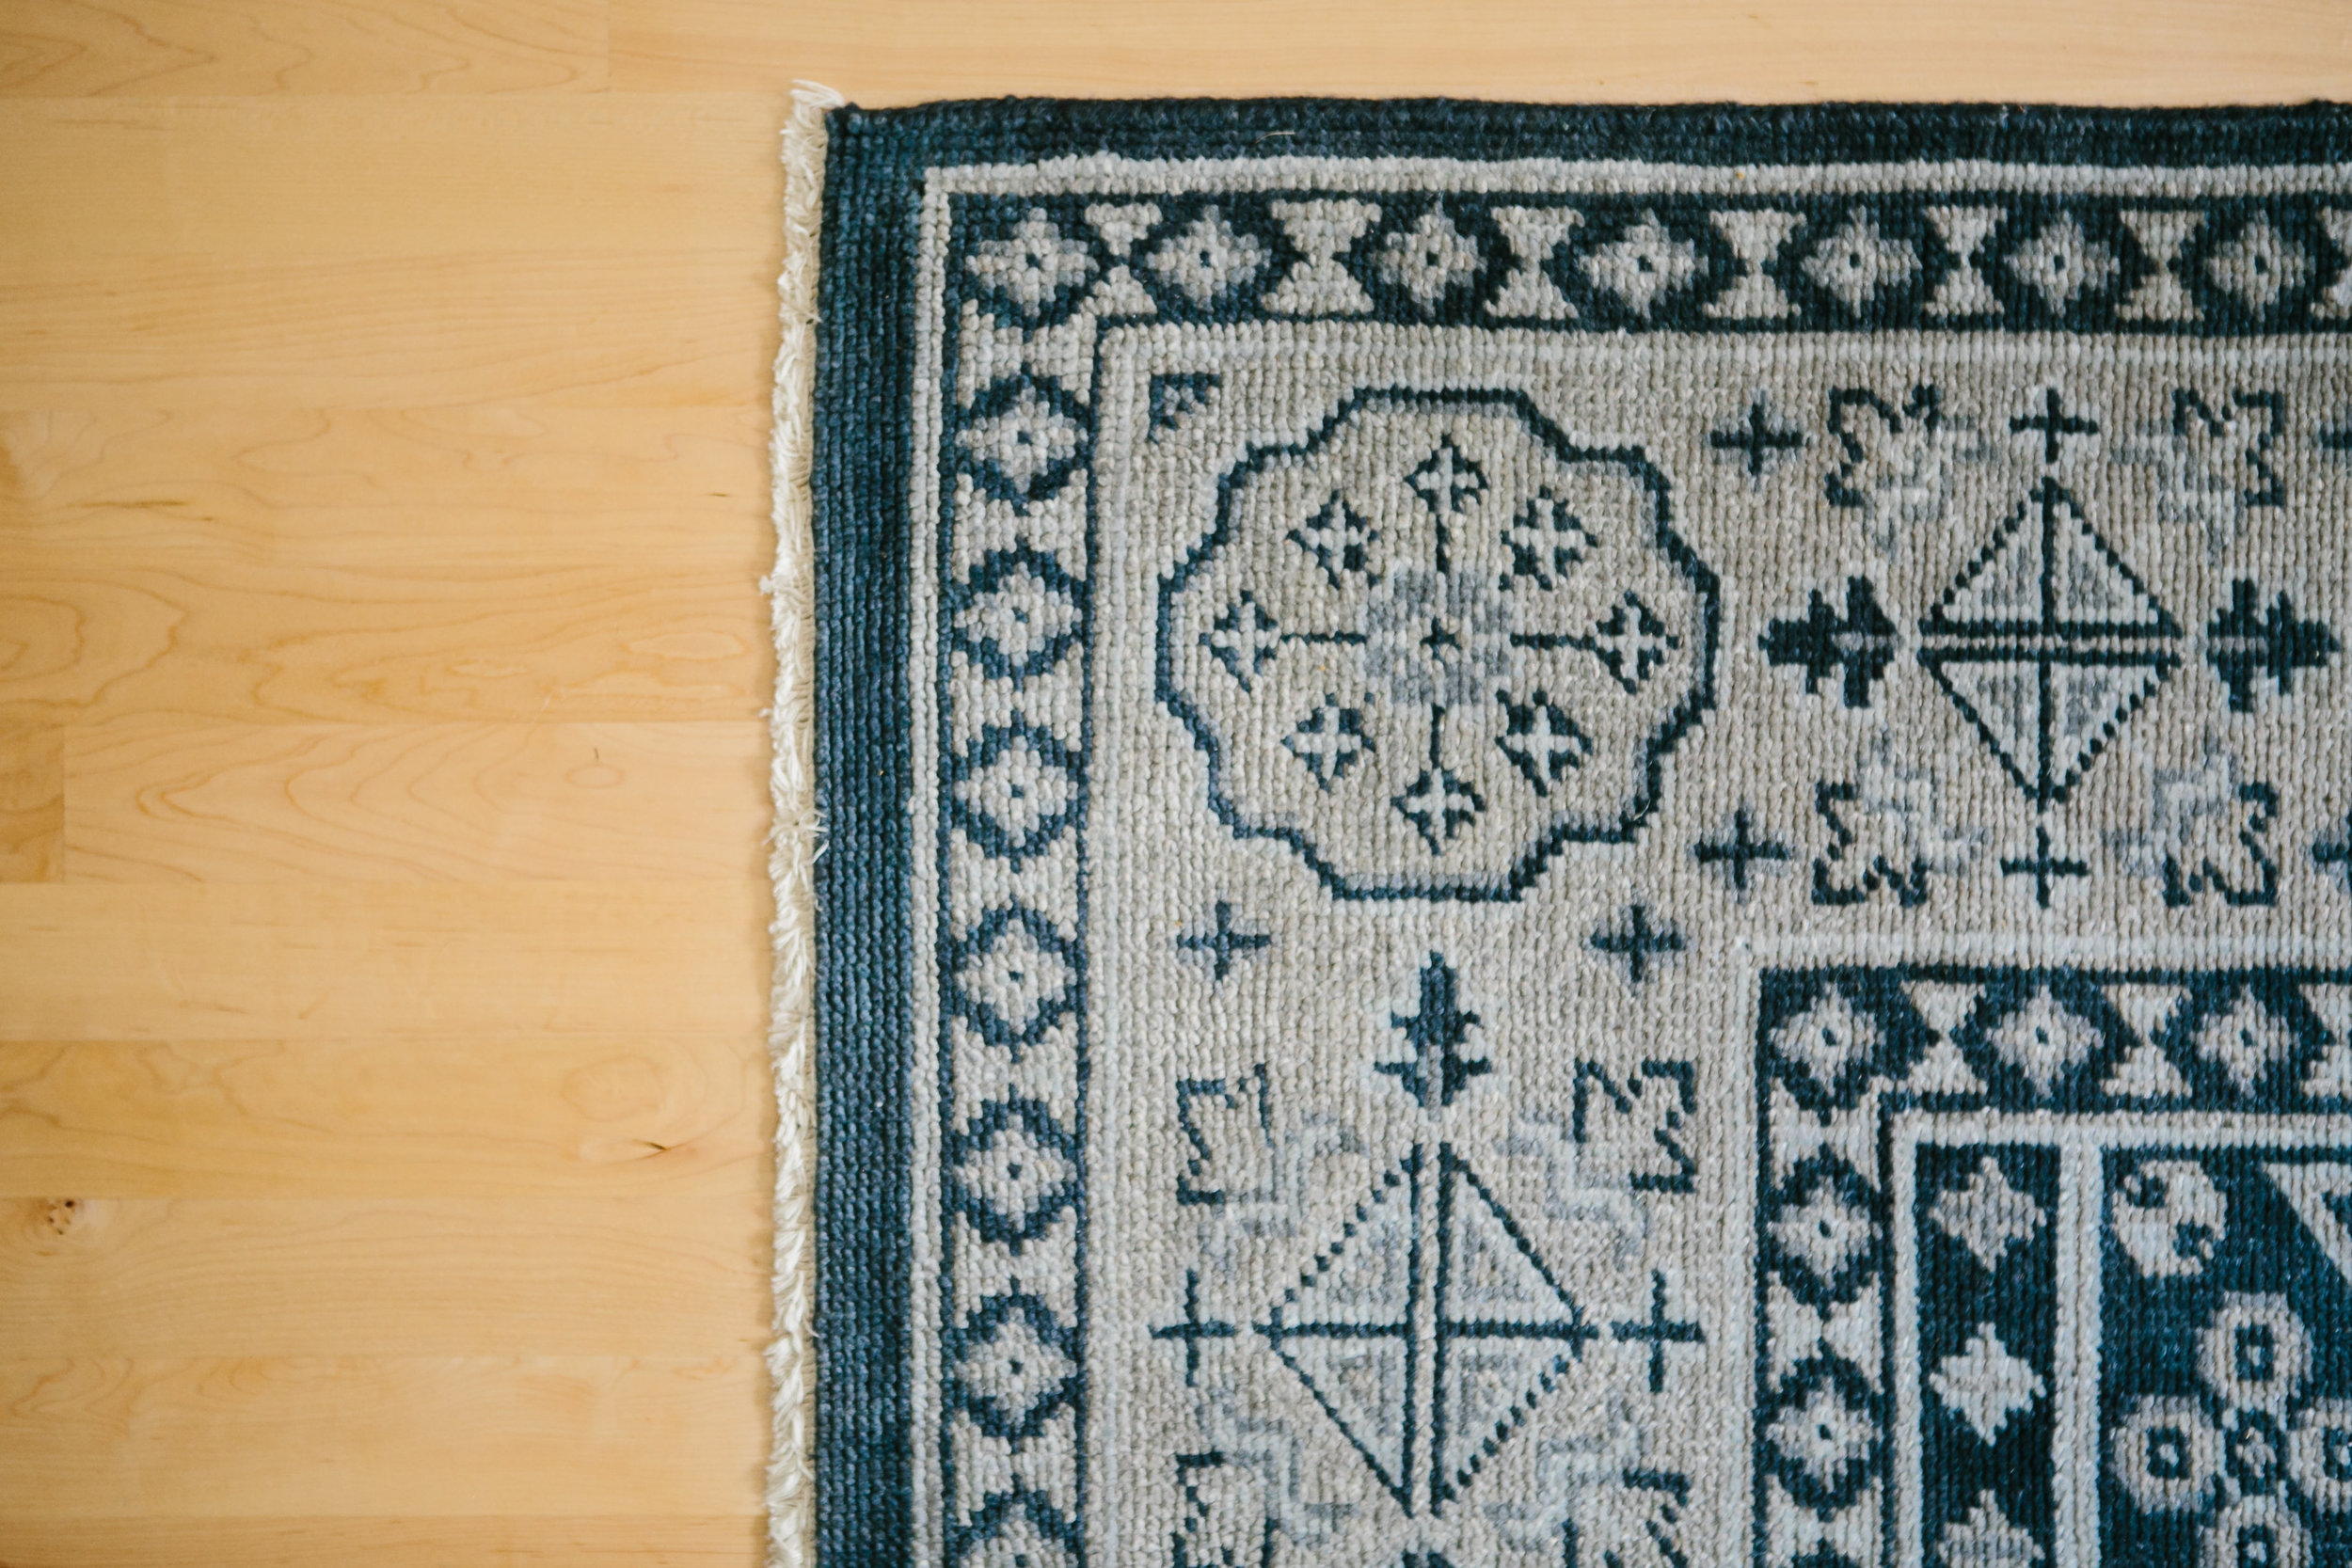 A heavily patterned Moroccan rug in navy blue and gray on light blonde hardwood floors.